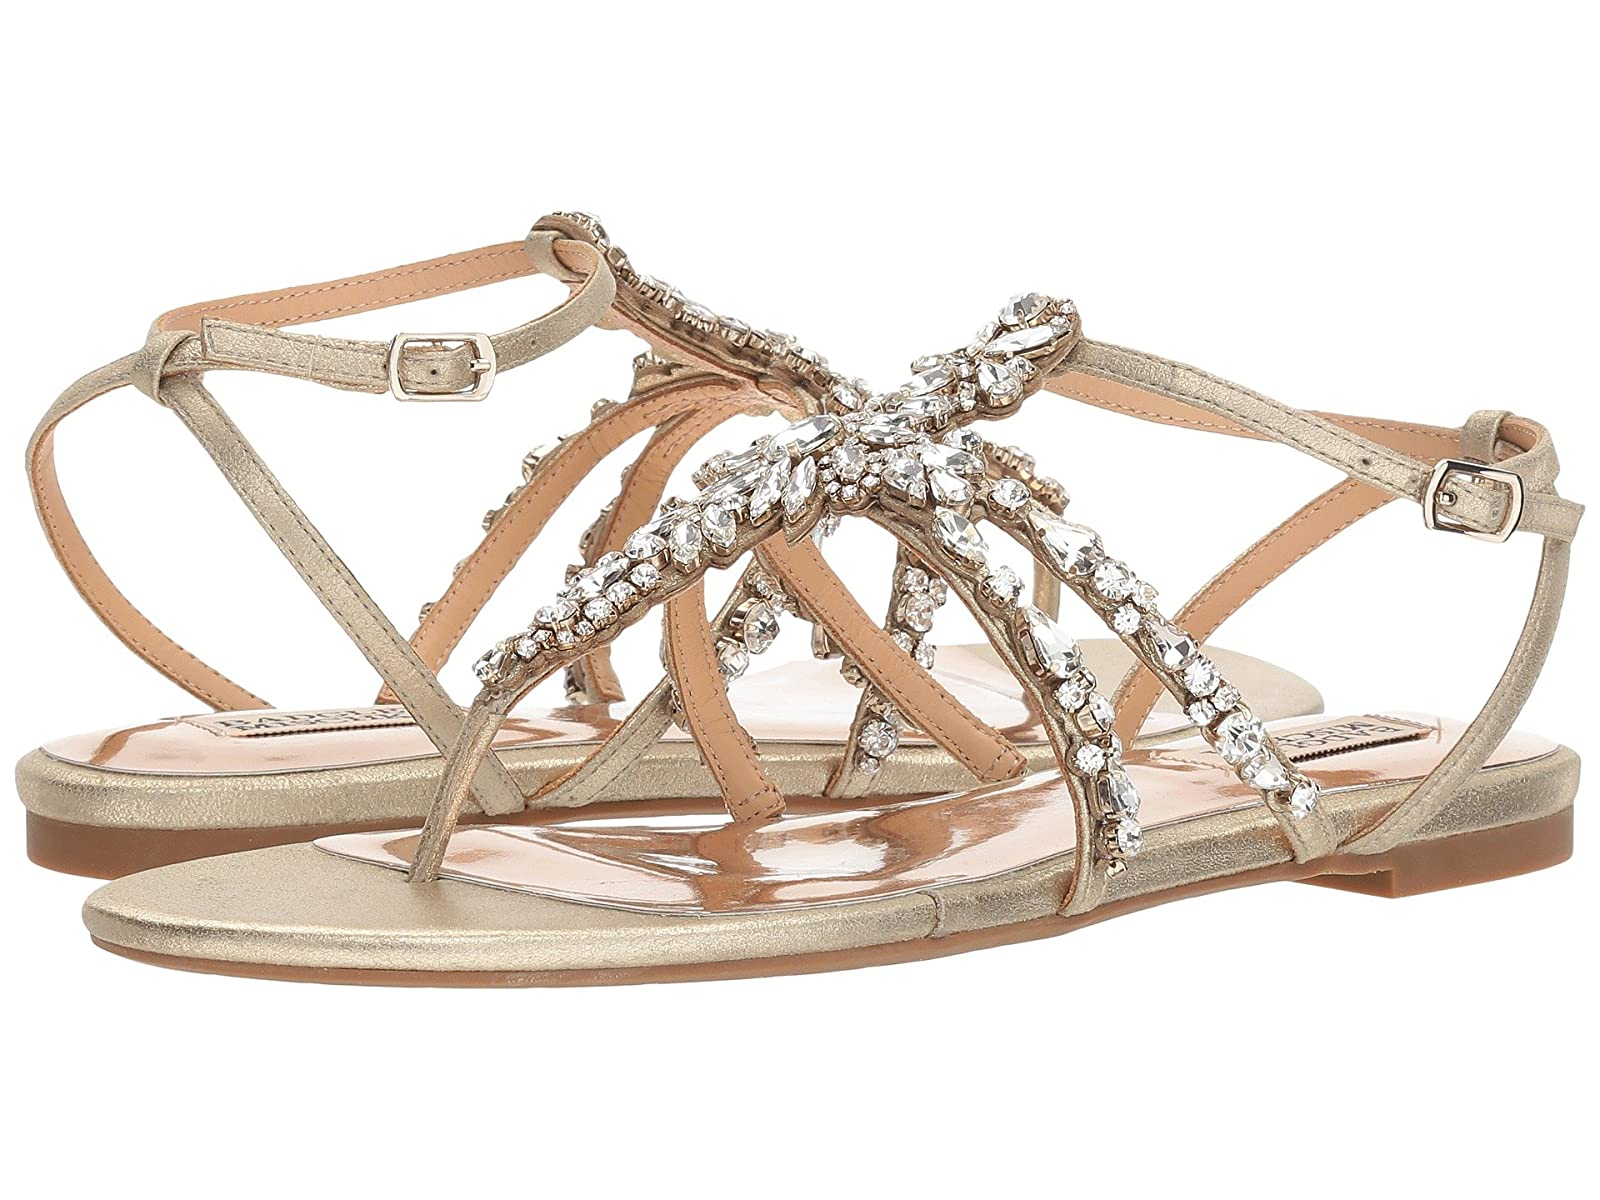 Badgley Mischka HampdenComfortable and distinctive shoes